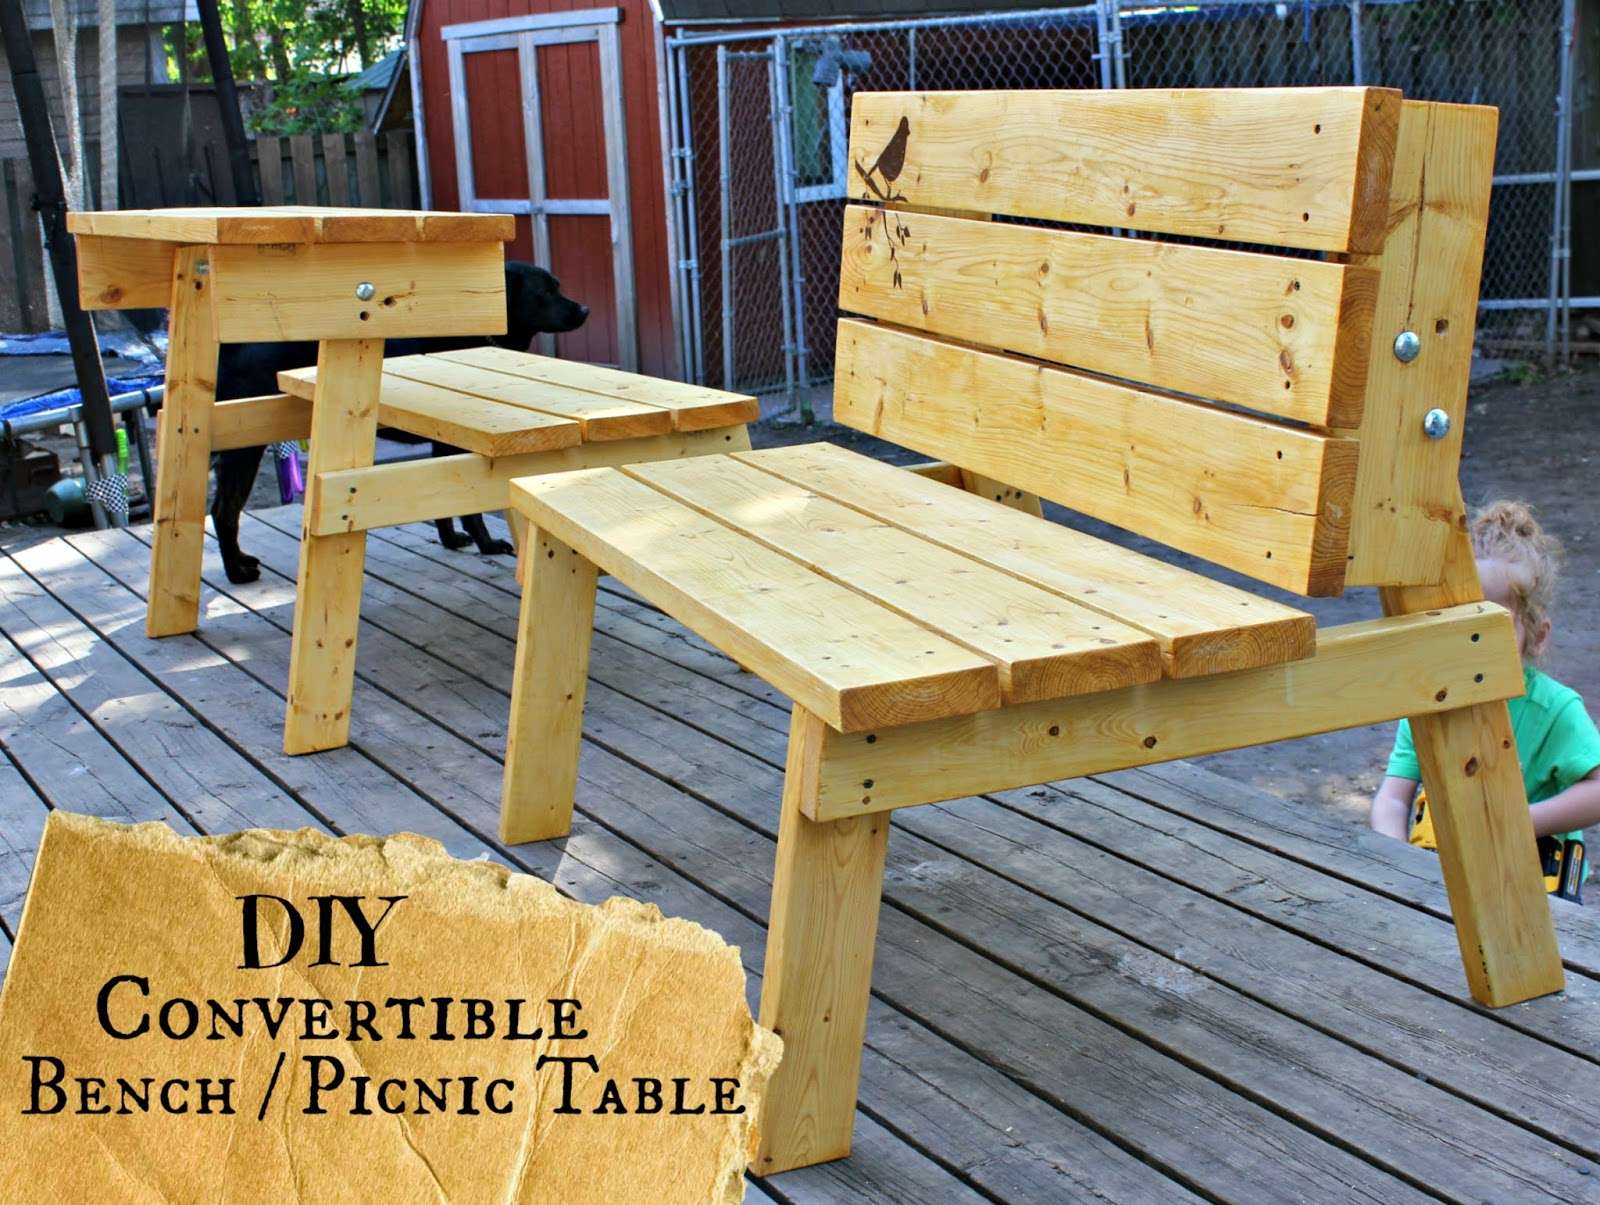 The Good Kind Of Crazy Convertible Bench Picnic Table You Can Make Tomorrow